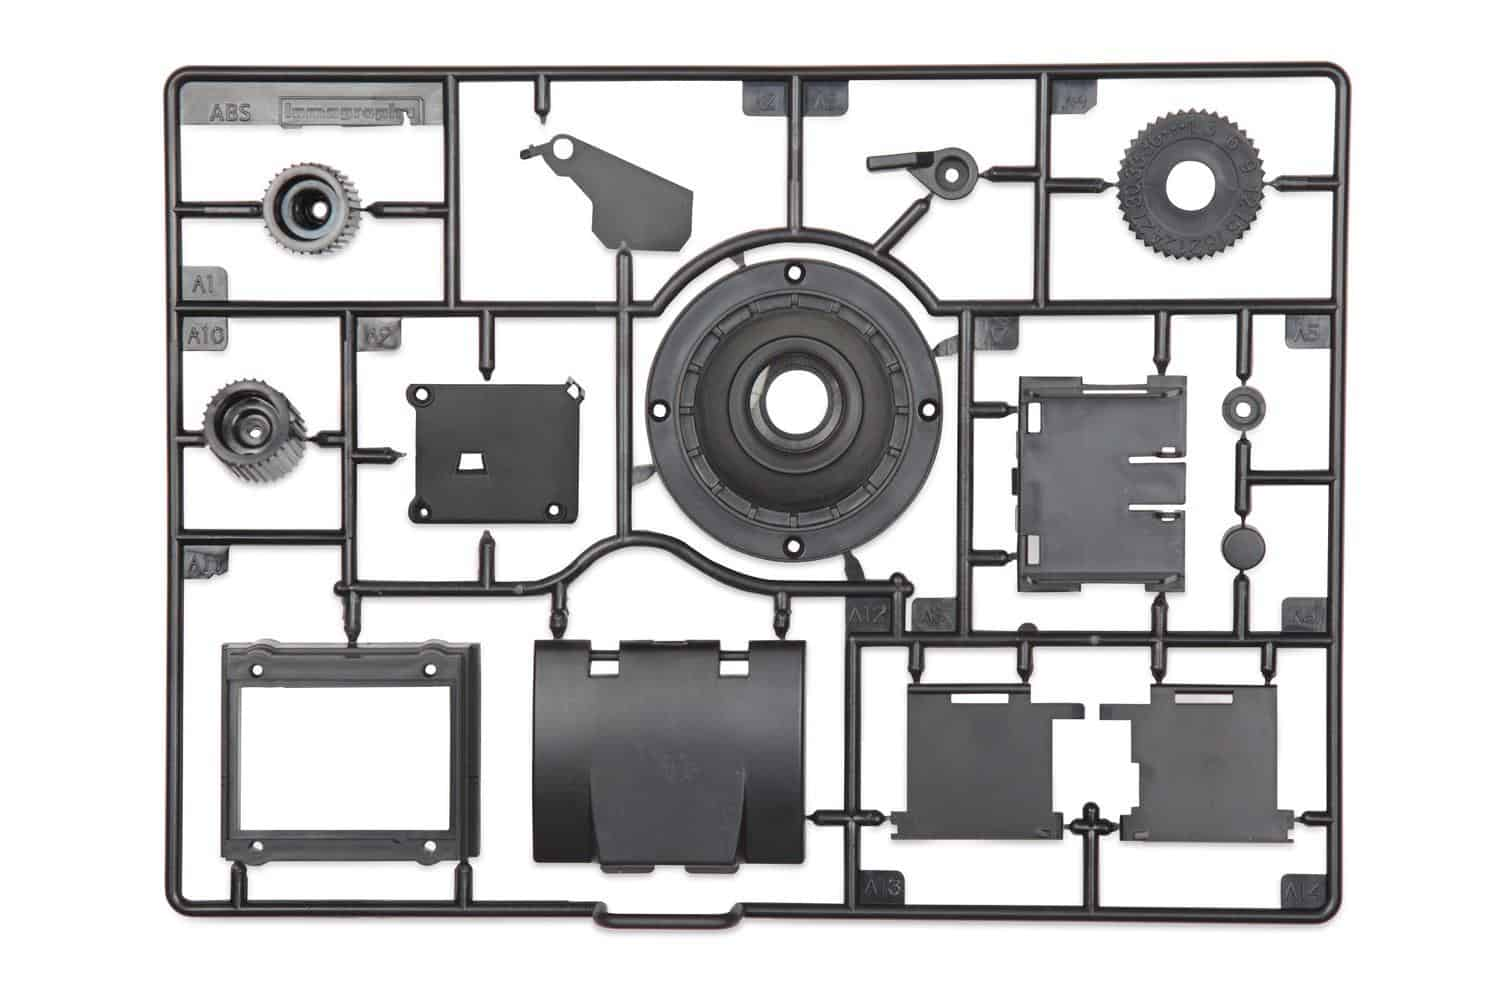 Lomography Konstruktor DIY 35mm SLR Camera Gray Parts